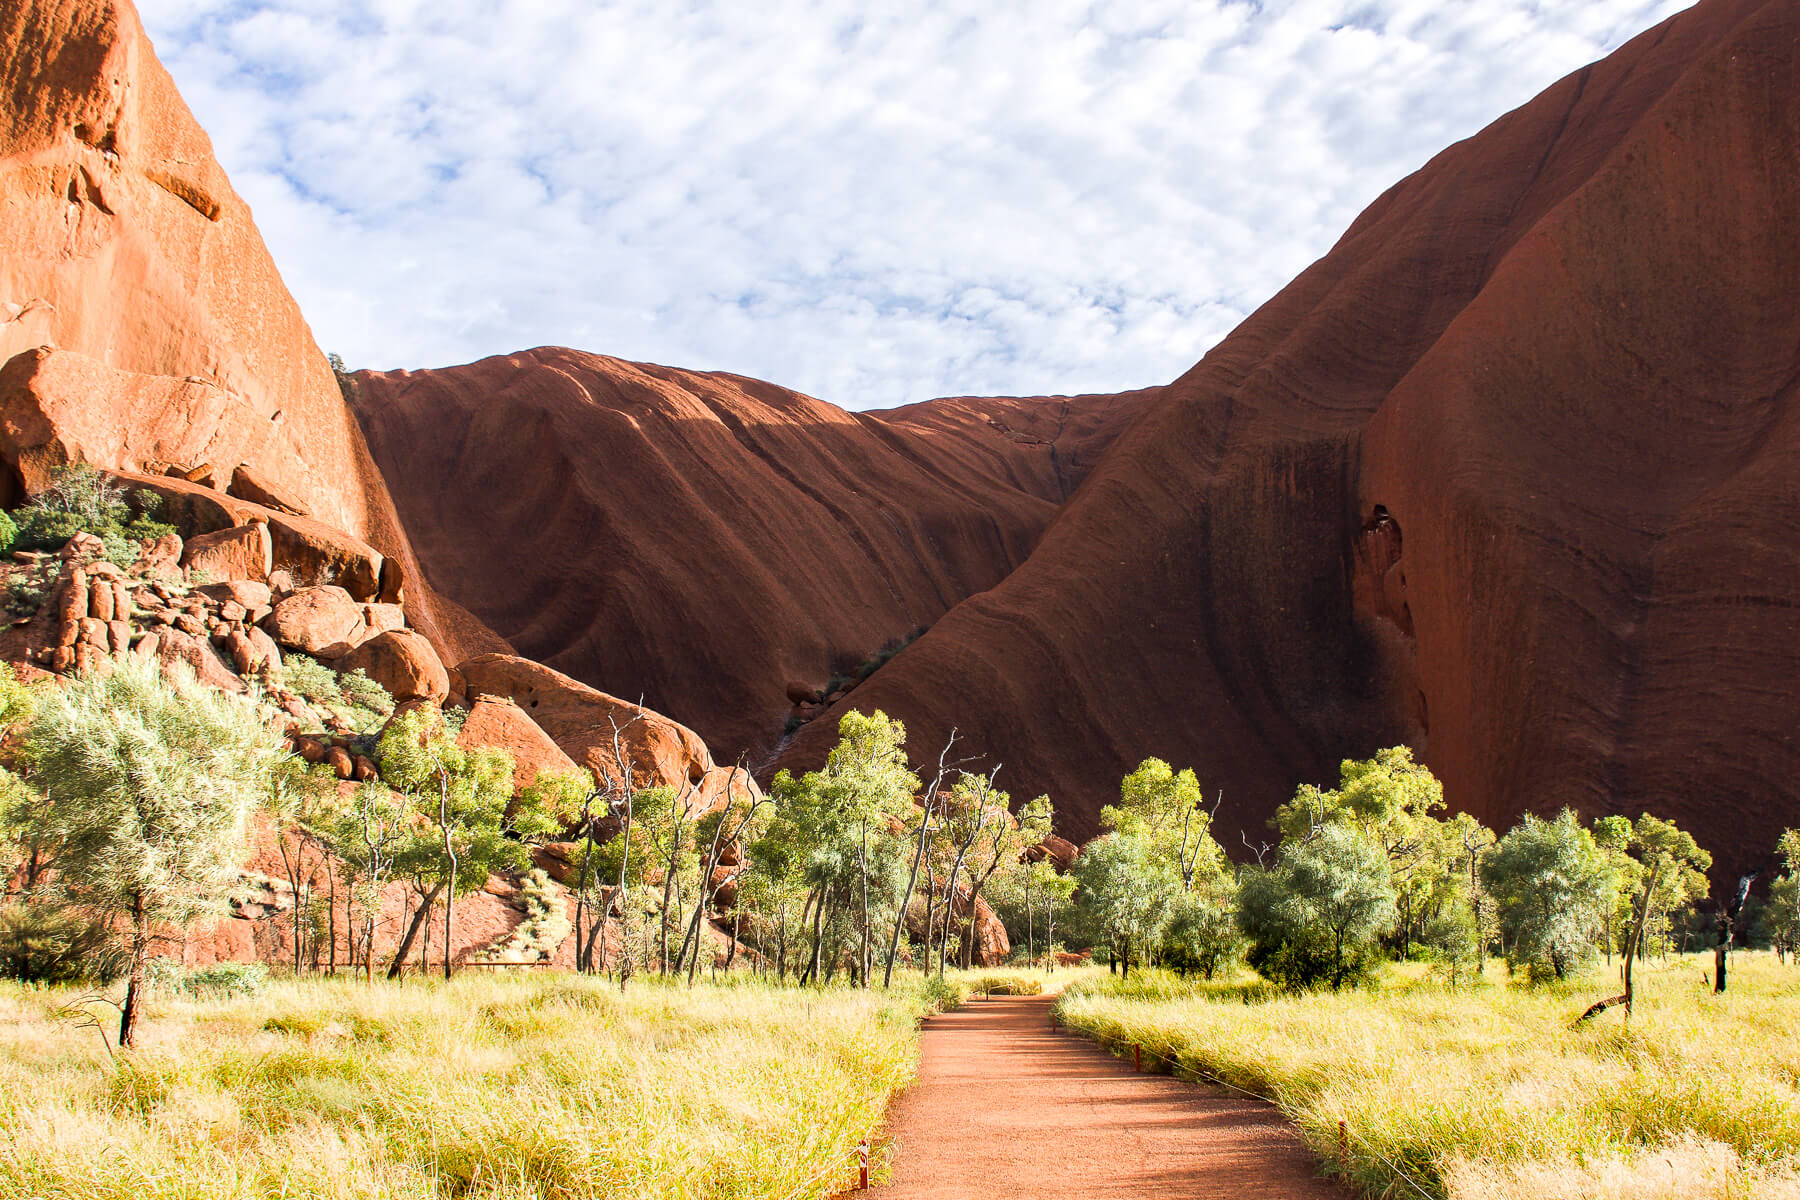 Path leading through trees to Ayers Rock